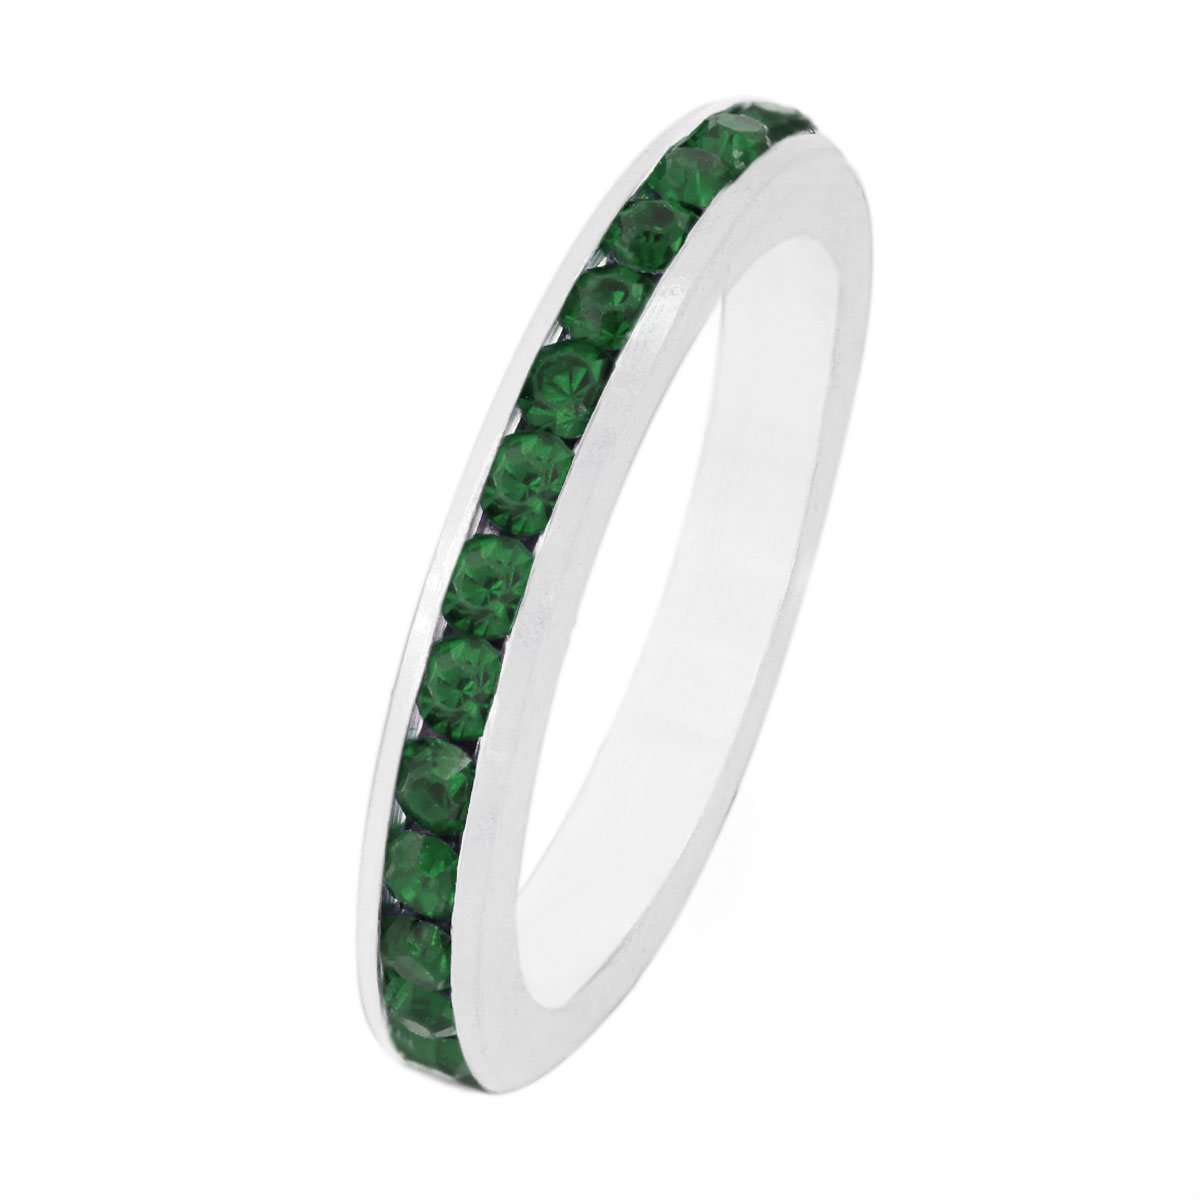 925 Sterling Silver & Emerald Green Color Cubic Zirconia CZ Stackable Full Eternity Ring Band 3 mm (Sizes 5-11) (11)